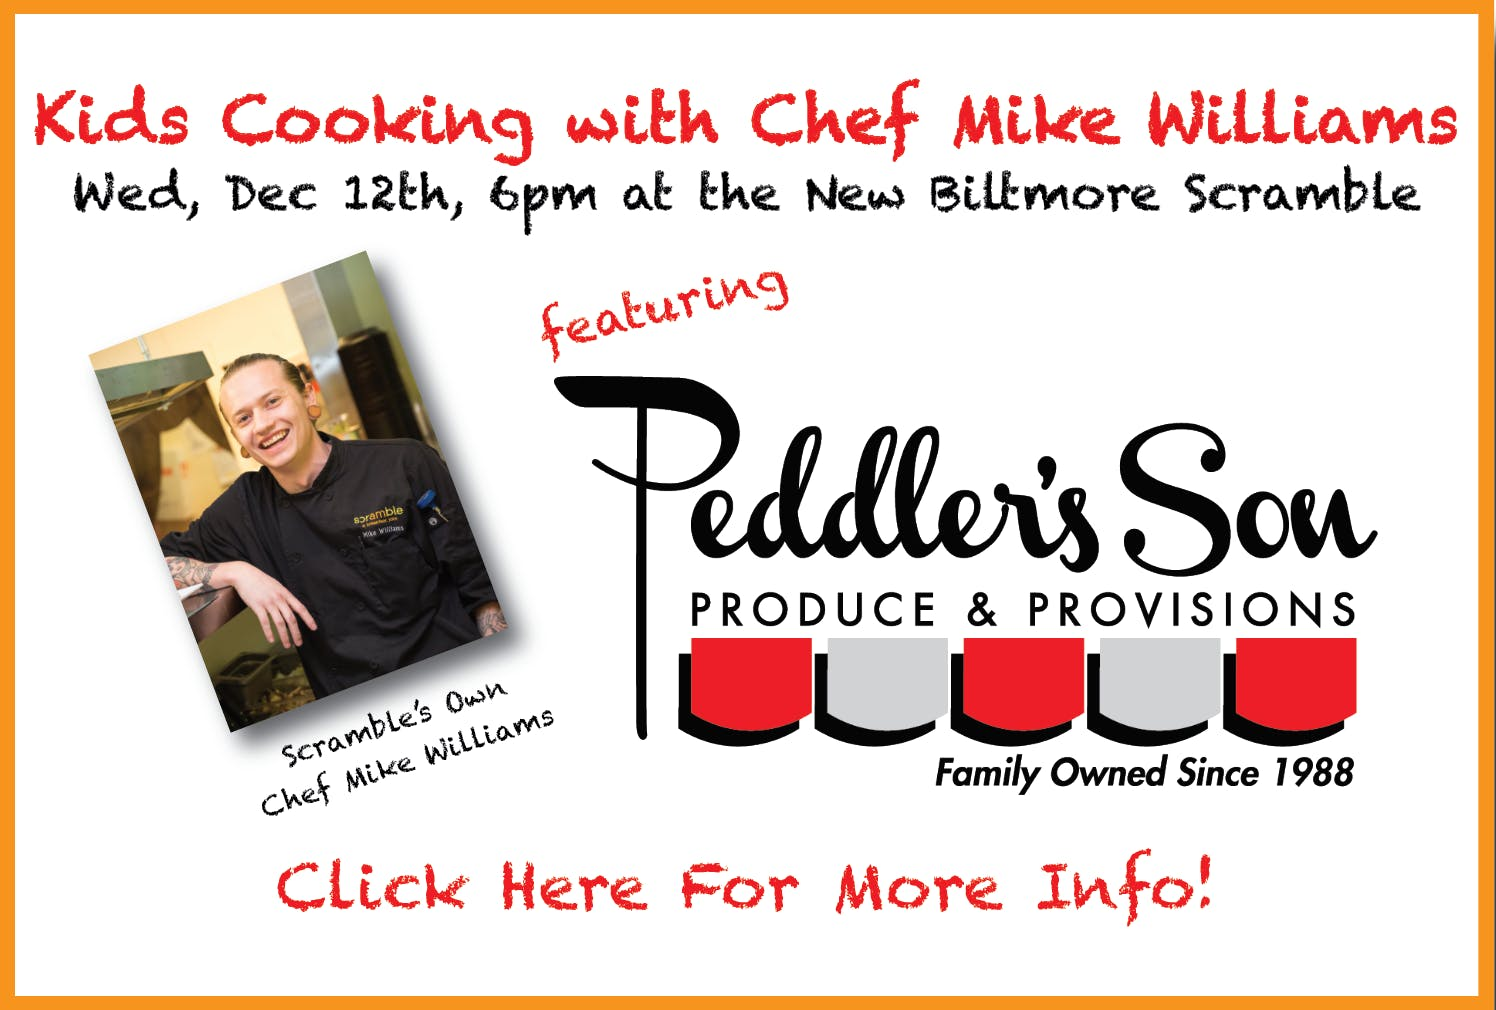 December 2018 Scramble Kid's Cooking Class with Chef Mike Williams